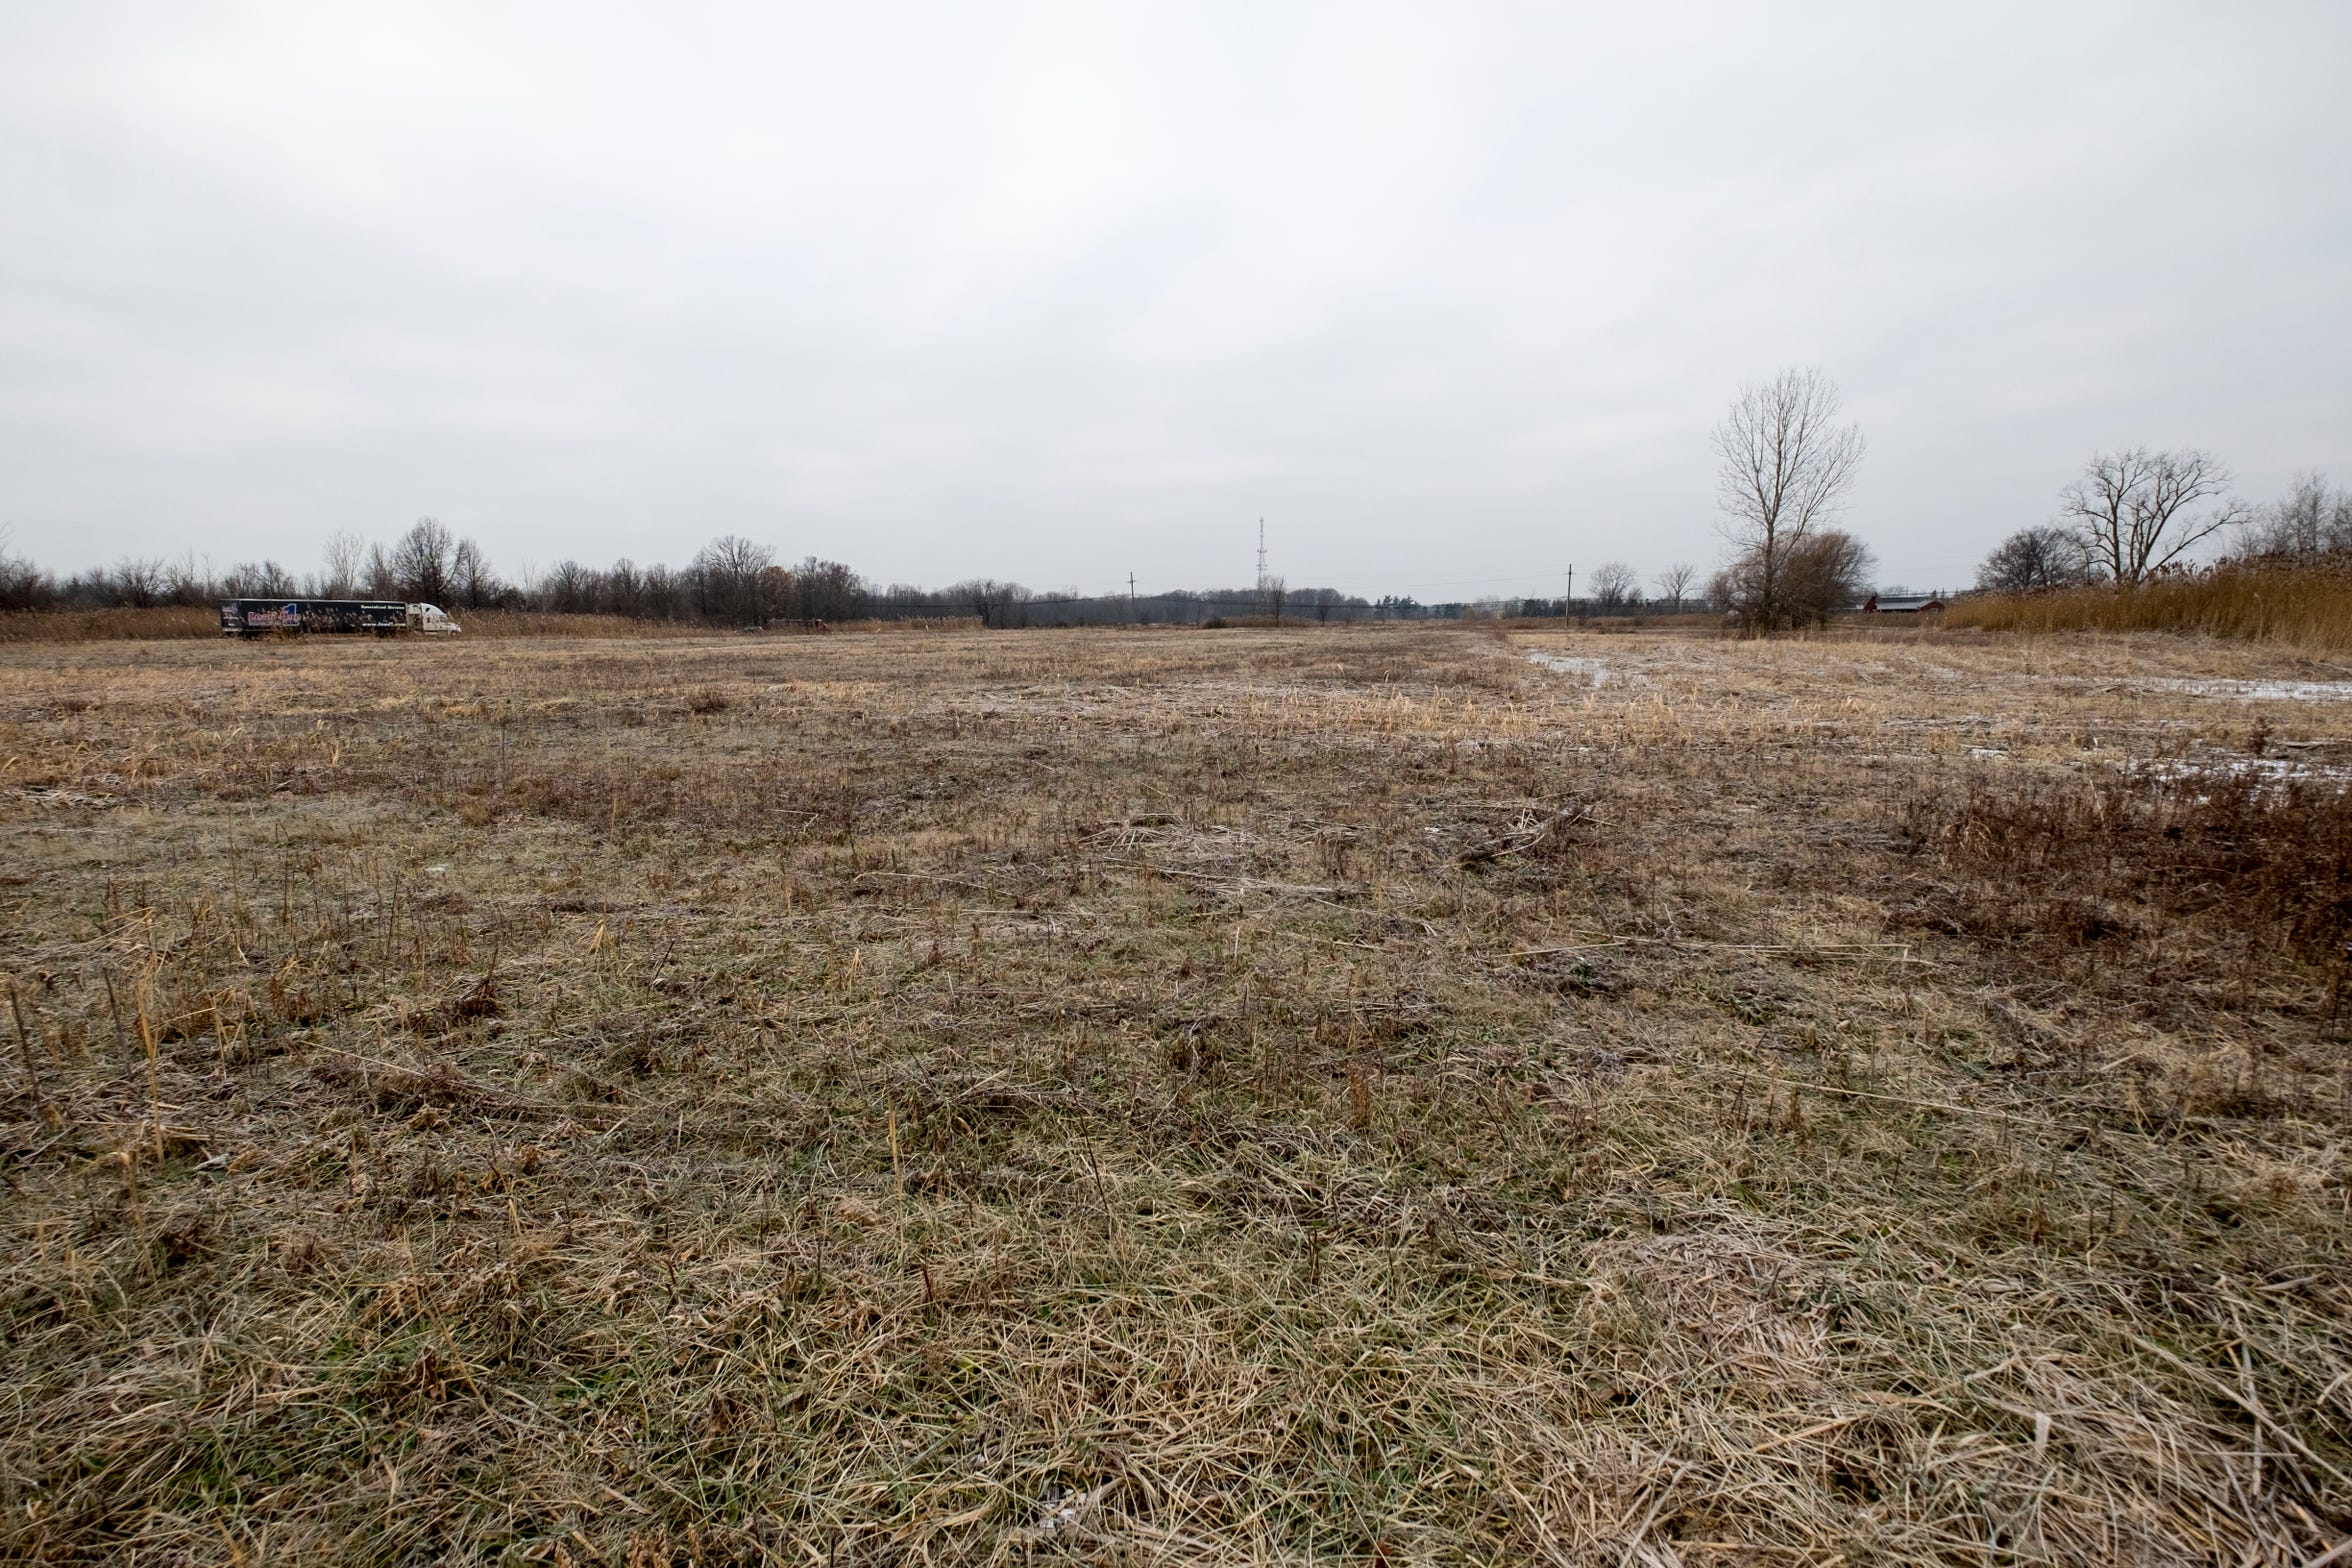 There is an 80-acre property in Ira Township available for developing.